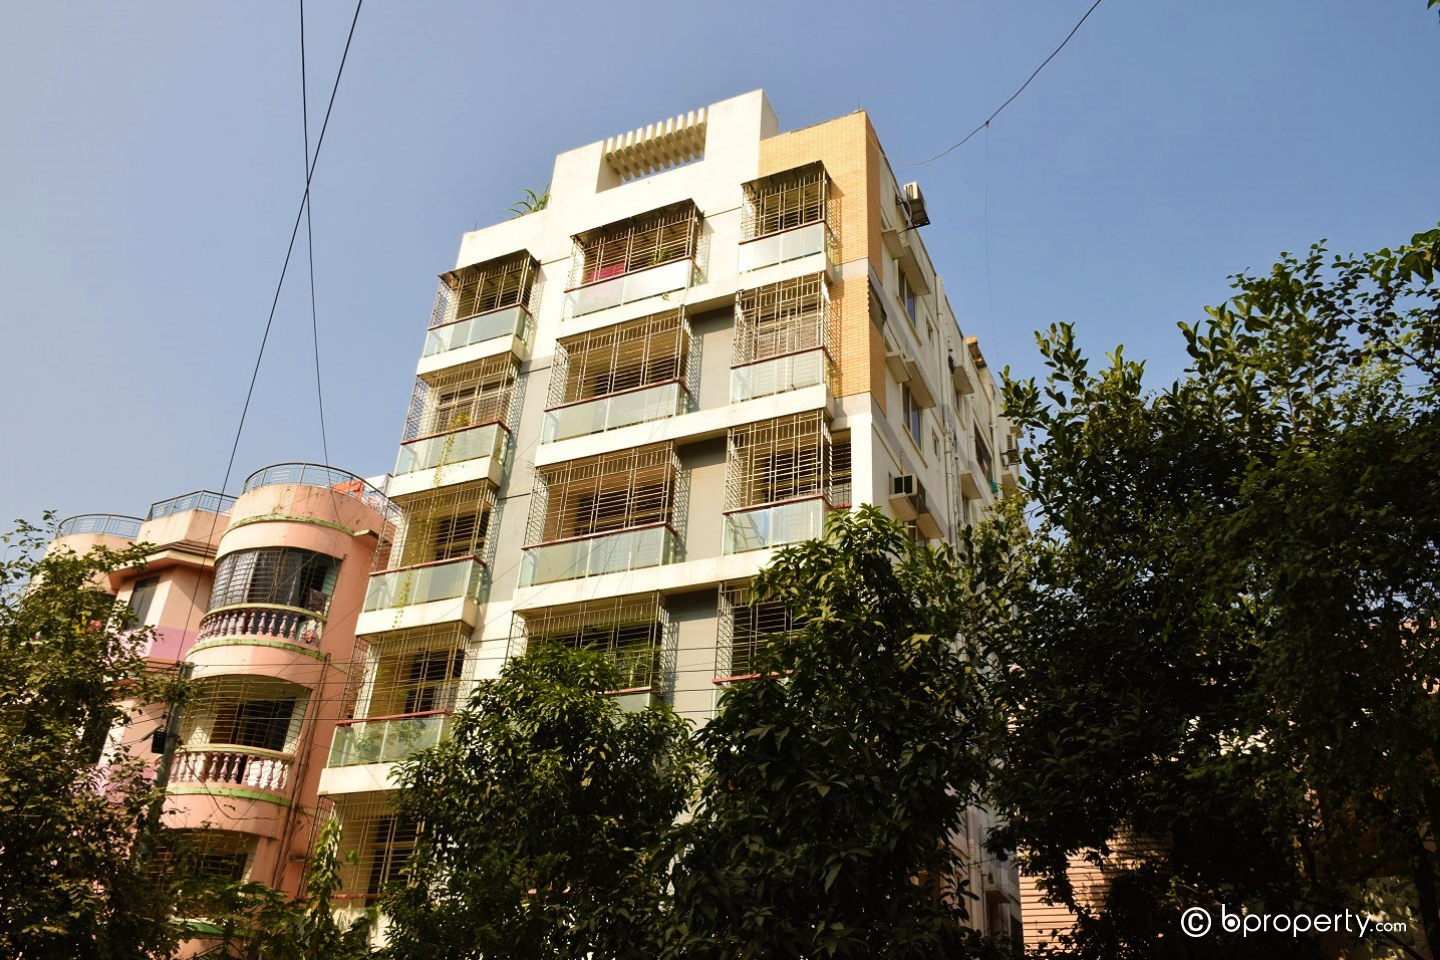 Don't miss the chance to purchase one of the best apartments for sale at Uttara at the moment